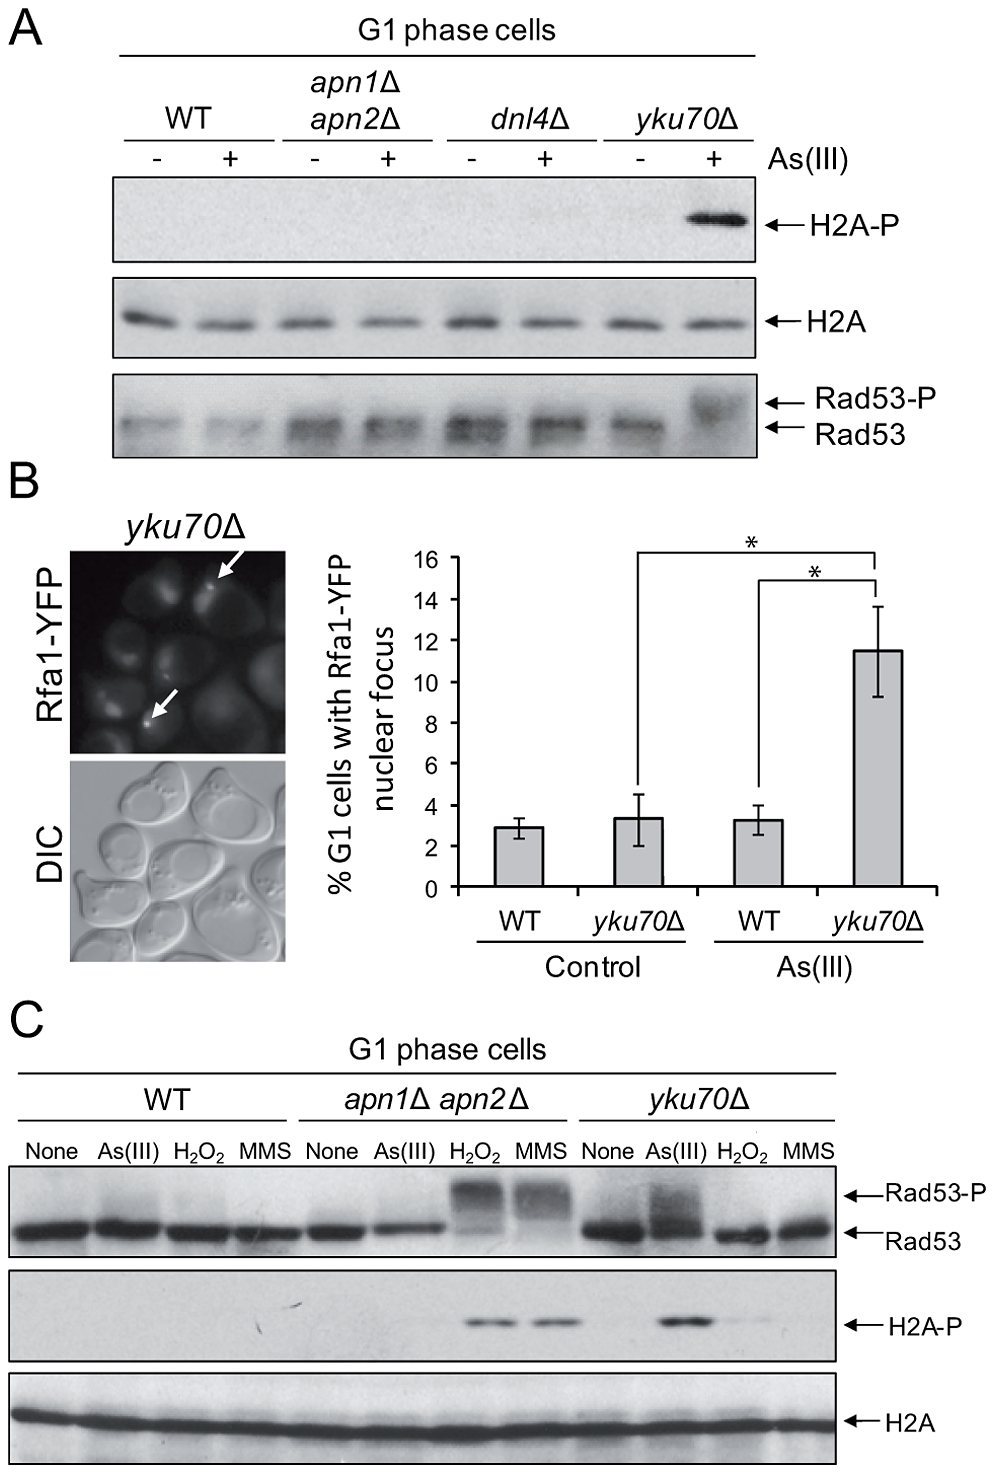 As(III) induces DNA damage checkpoint response in G1 phase in Yku70-deficient cells.